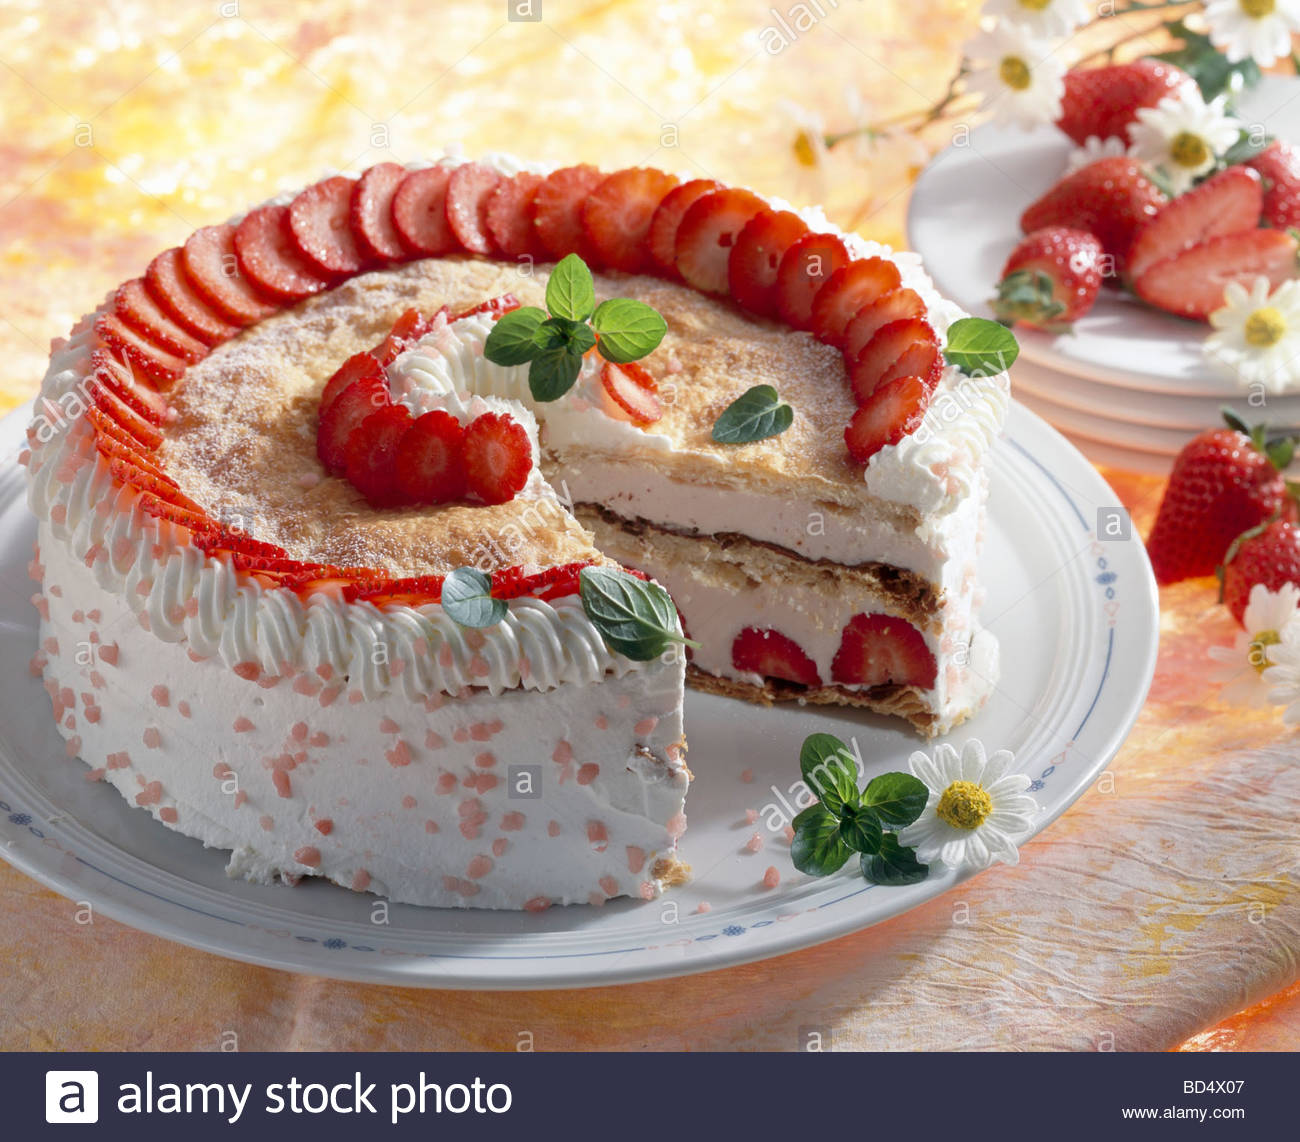 Stock Photo Strawberry Gateau With Cream Puff Pastry A Piece Taken